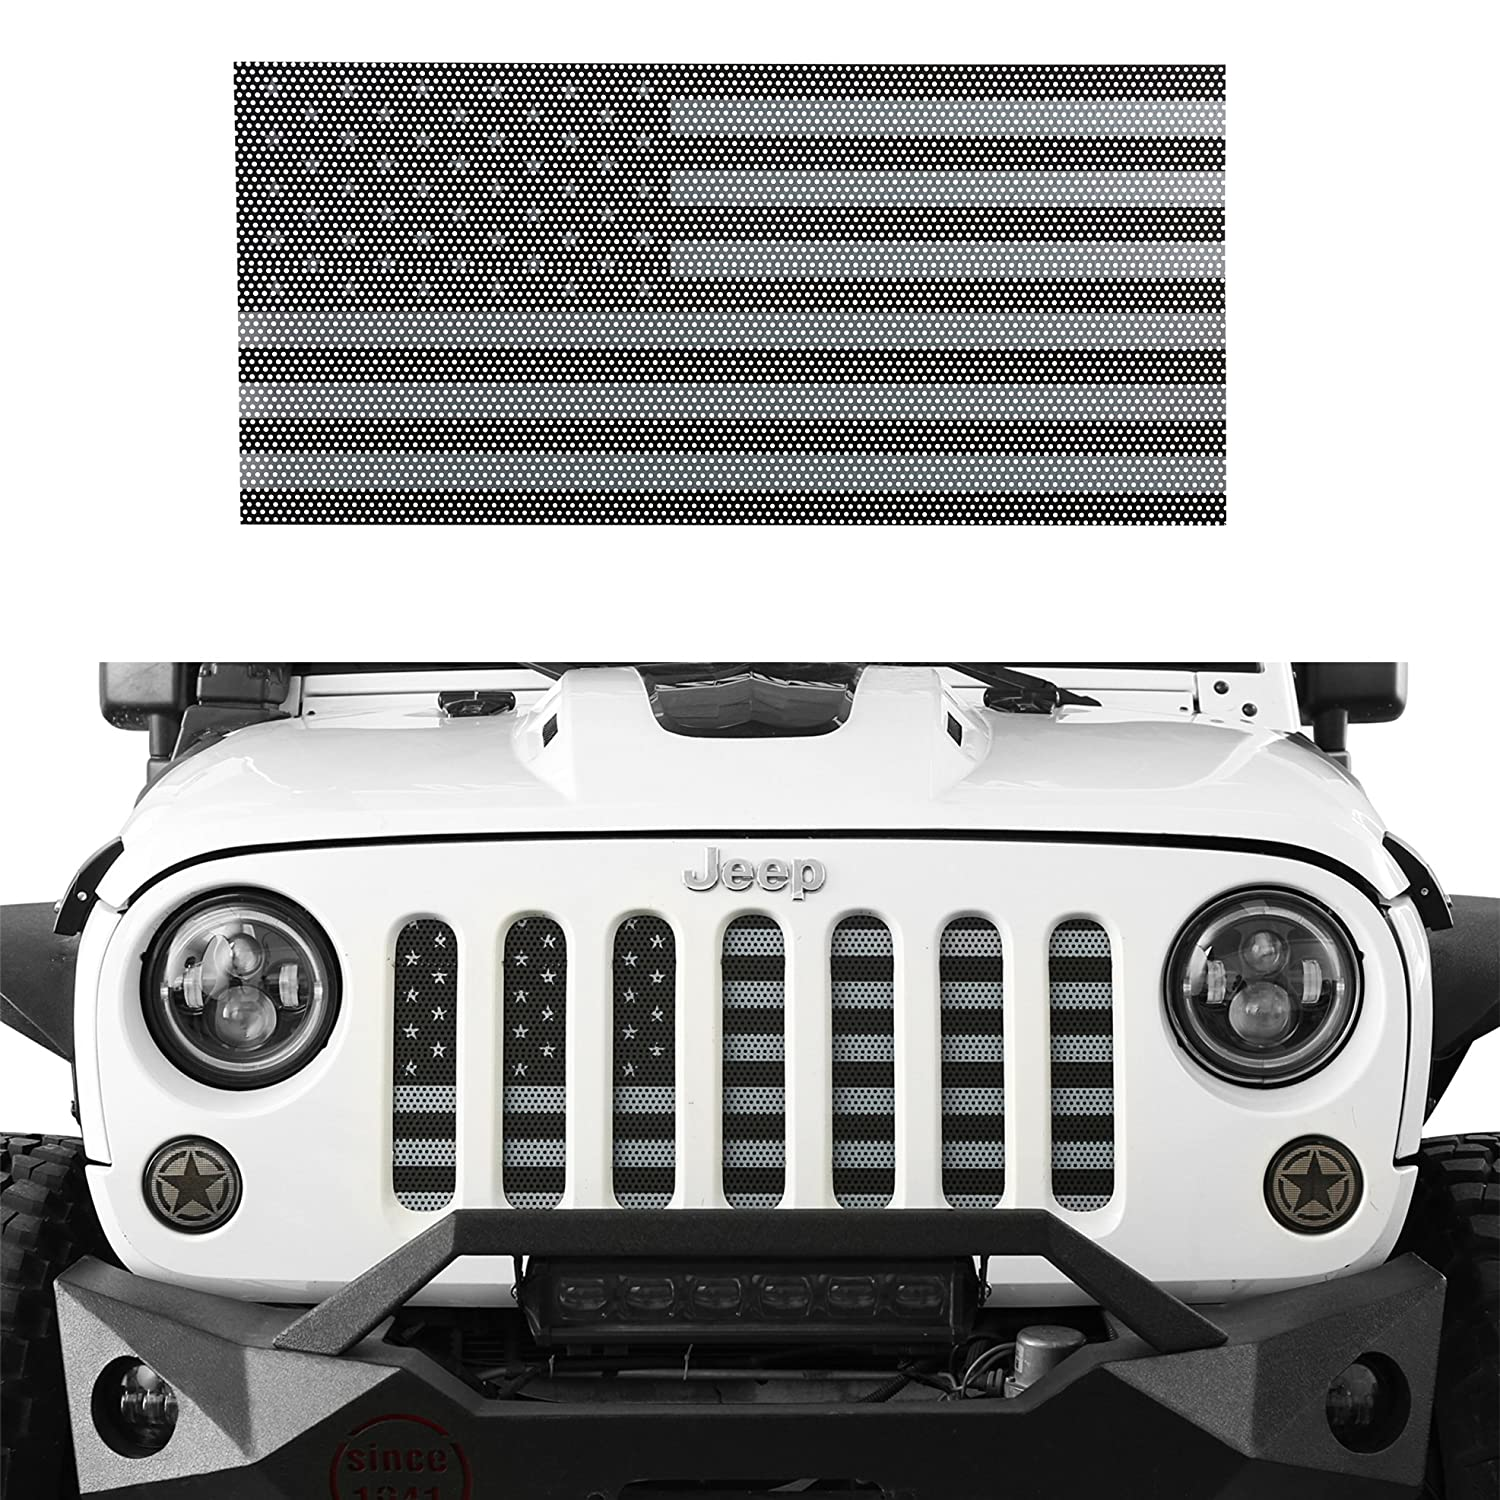 u-Box America US Flag Front Grille Insert Mesh Grill for 2007-2018 Jeep JK /& Wrangler Unlimited